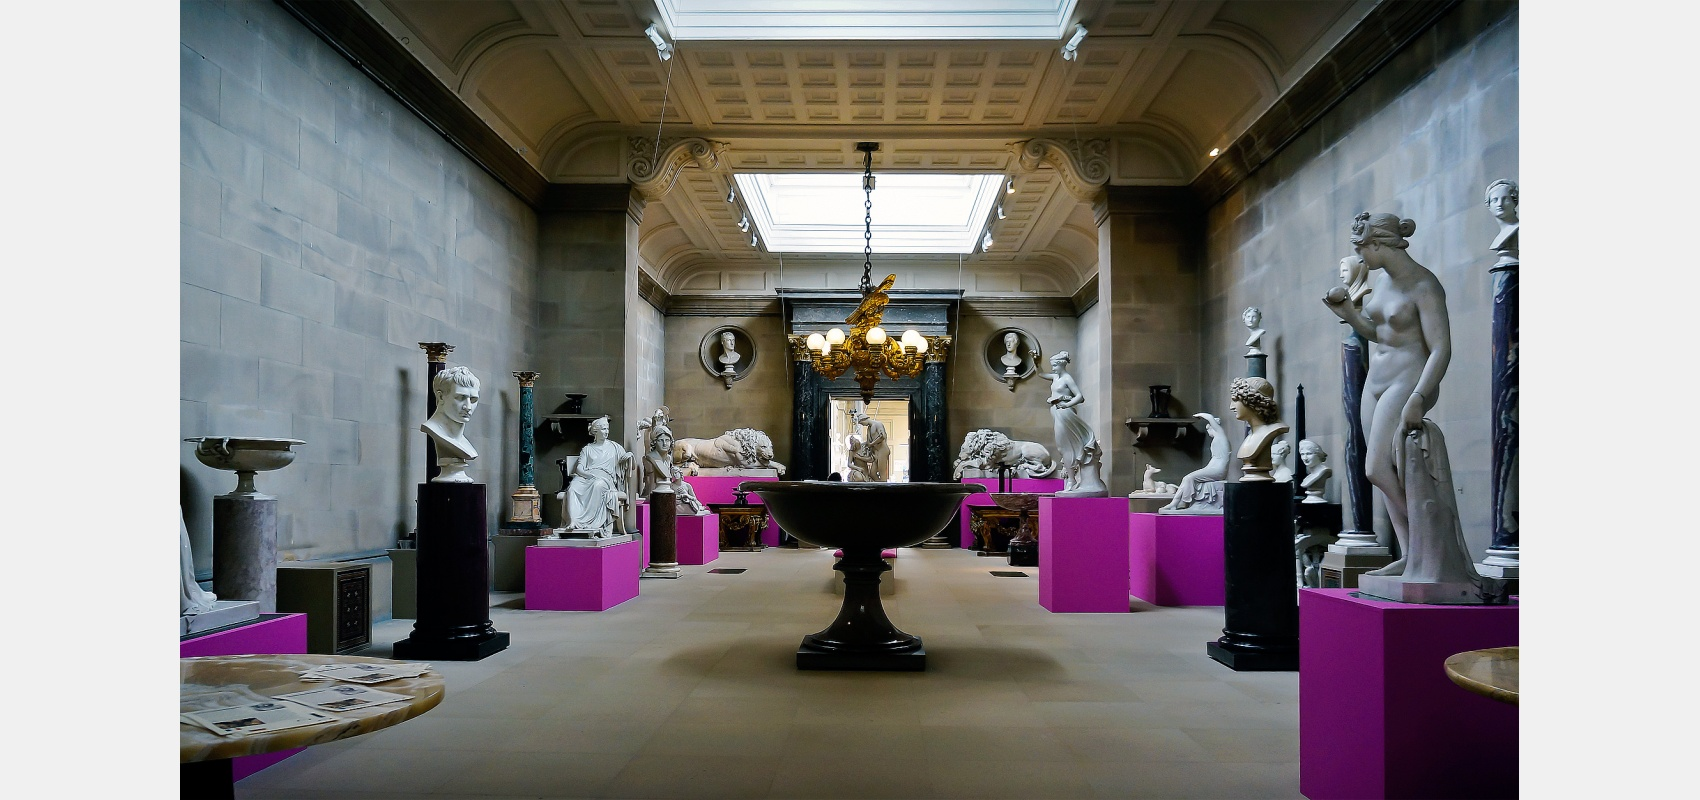 Interior photography - Collection of spare sculpture and busts below stairs at Chatsworth.